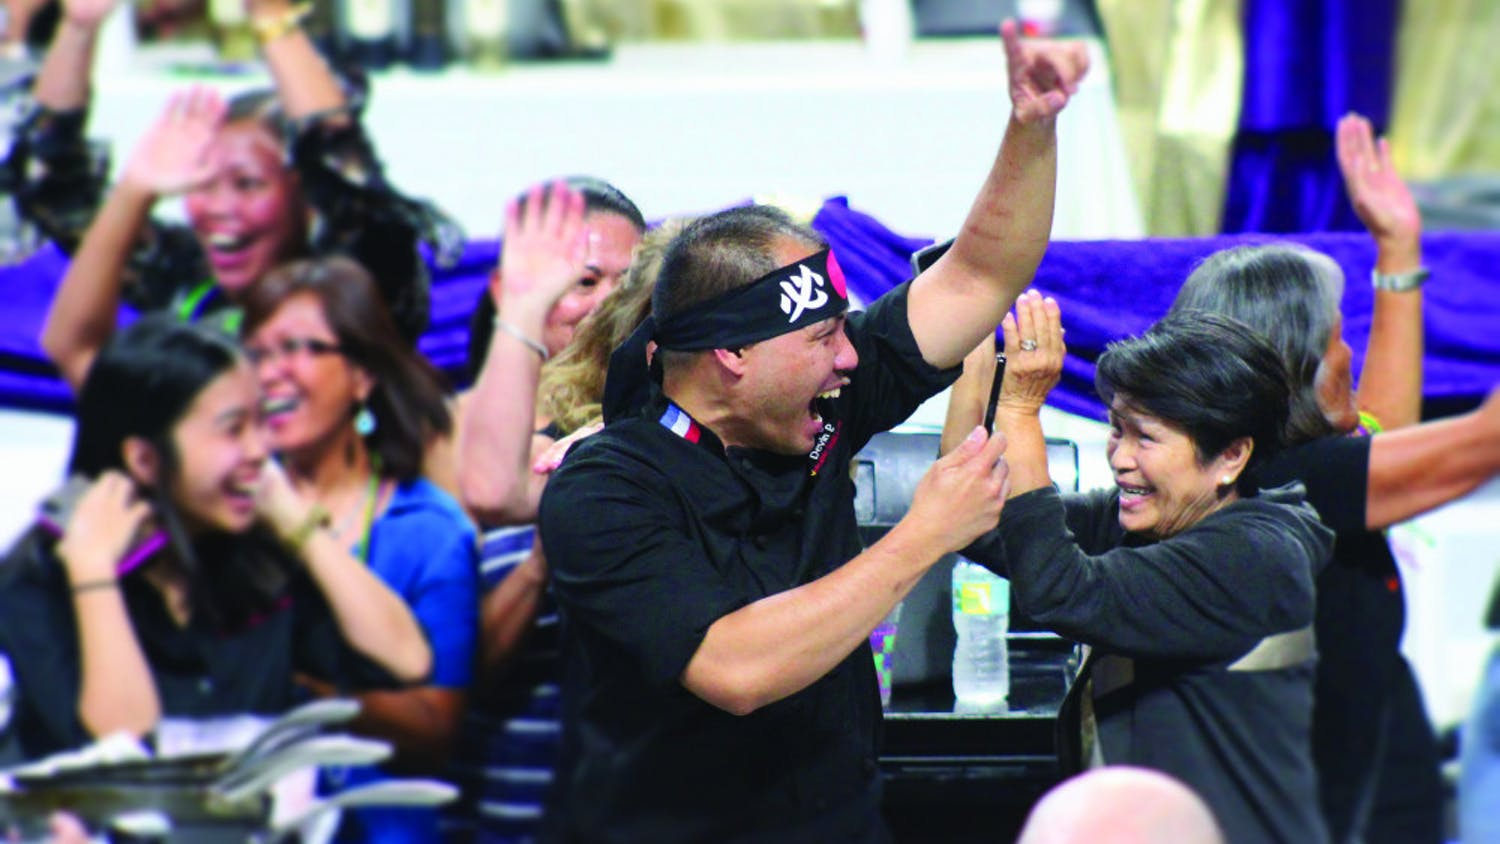 Chef Nester Espartero of Volcanic Sushi + Sake celebrates his team's Iron Chef victory at Tastes of Greater Gainesville 2018.